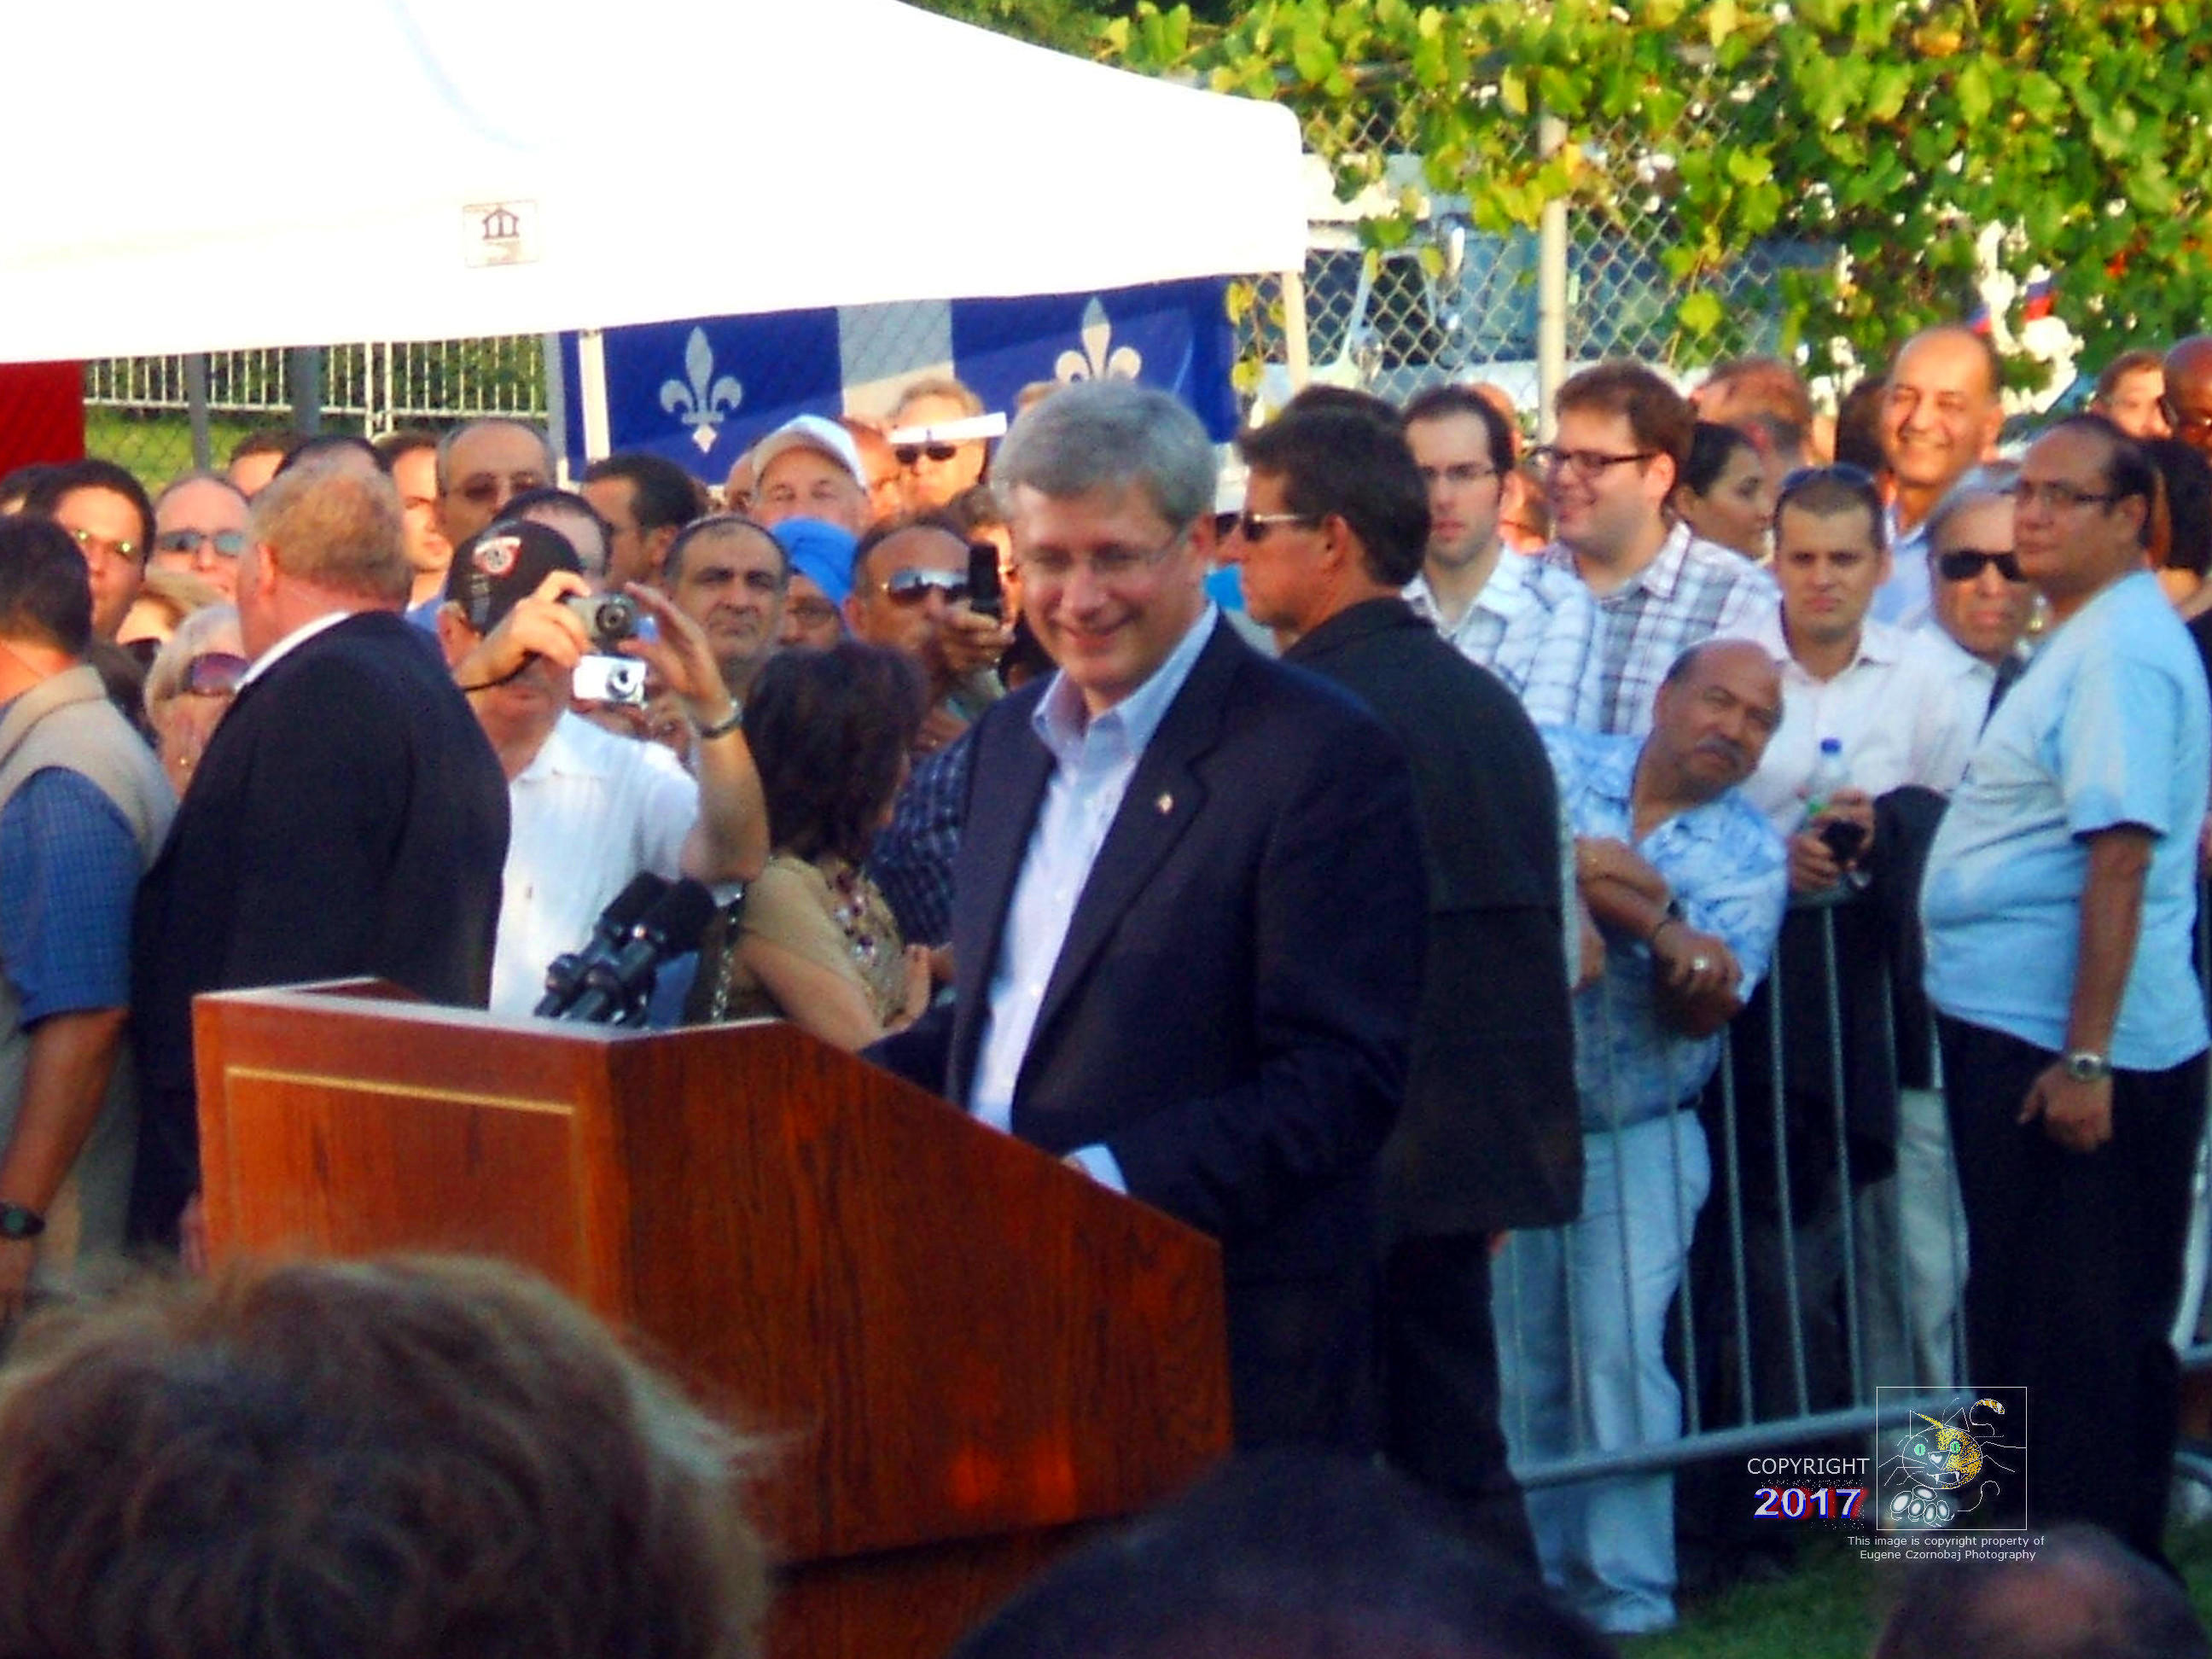 Saturday, June 15, 2013 former Canadian PM Steven Harper in political conversation with party supporters in Montreal's West Island.